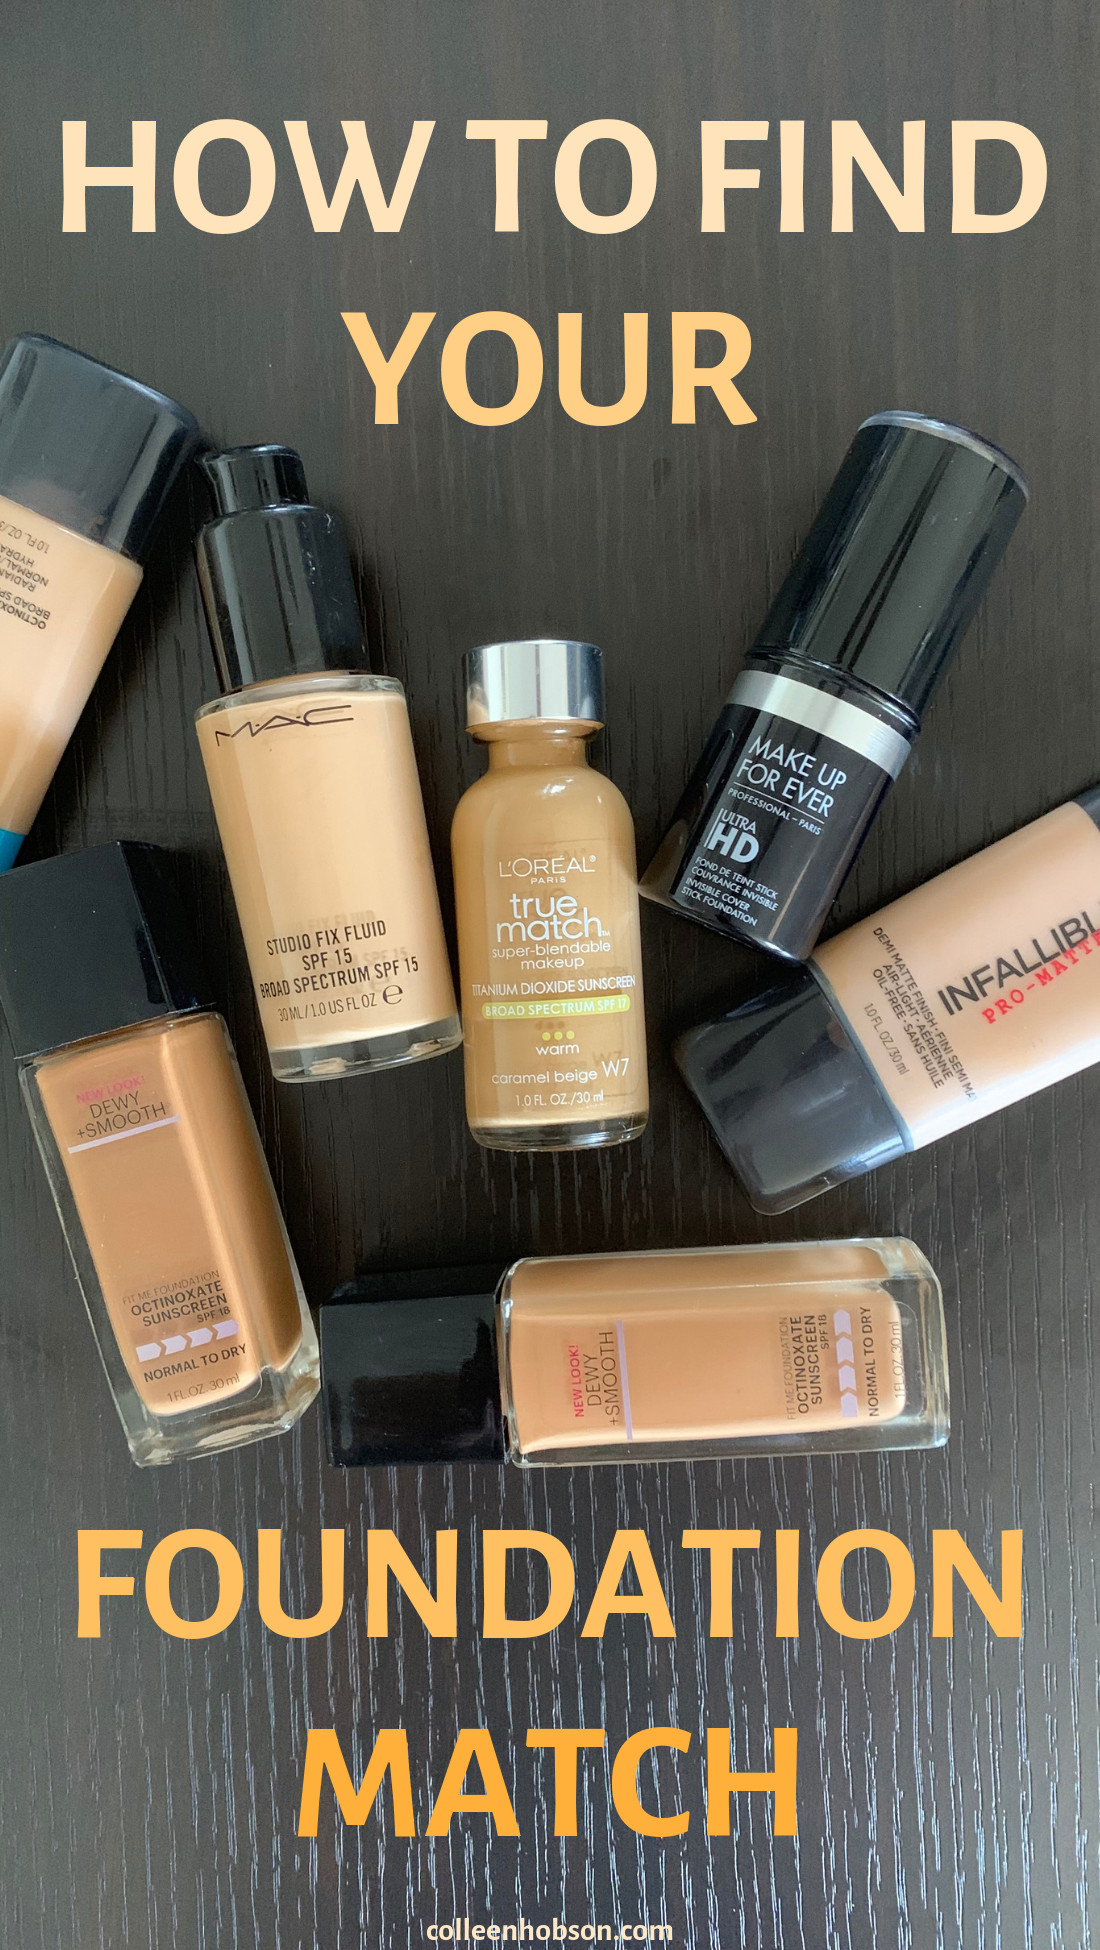 How To Find Your Foundation Match (With images) How to